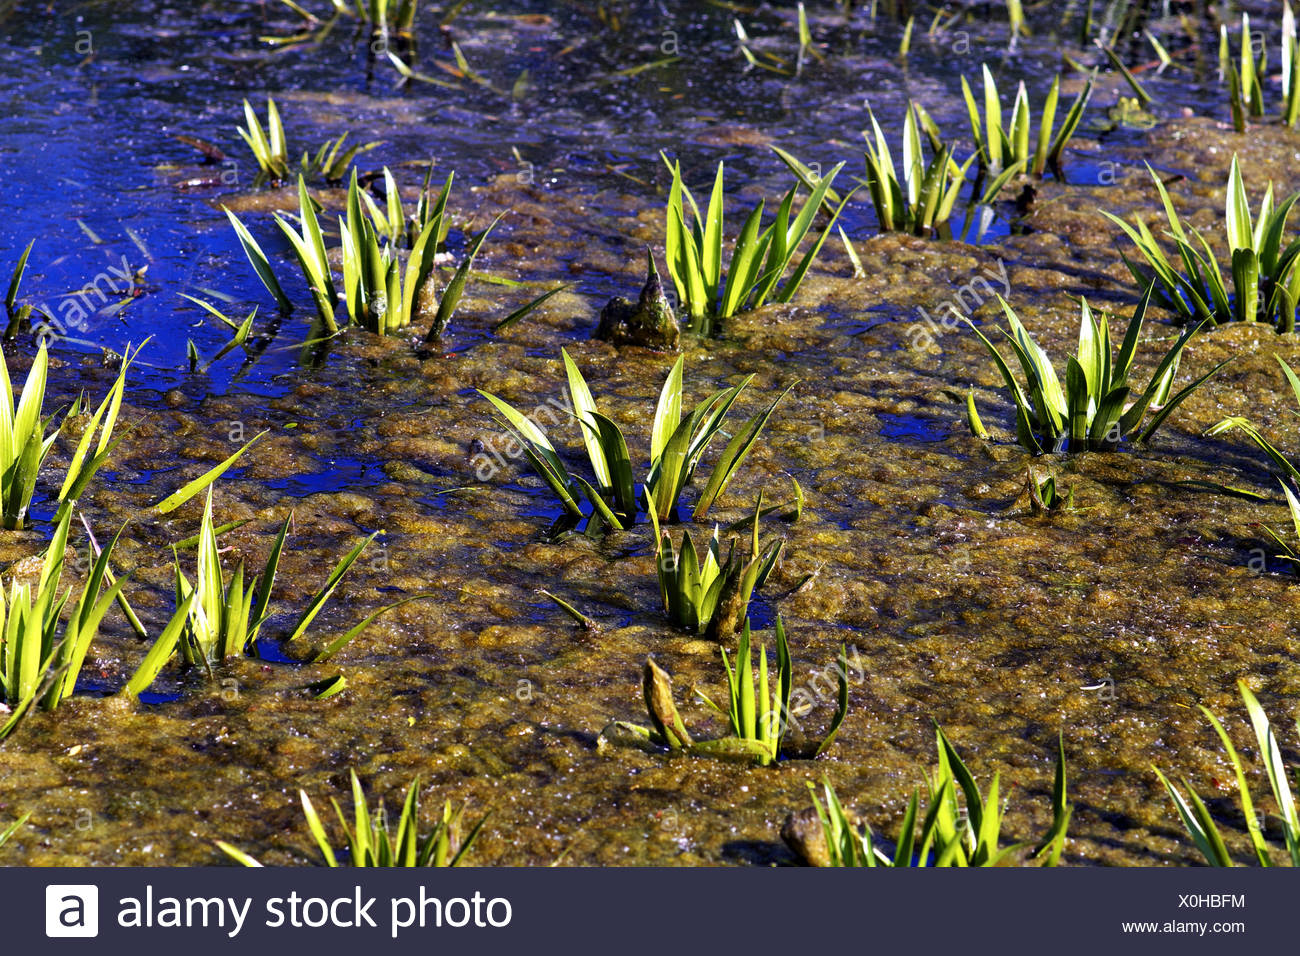 crab's-claw, water-soldier (Stratiotes aloides), on a pond, Germany Stock Photo